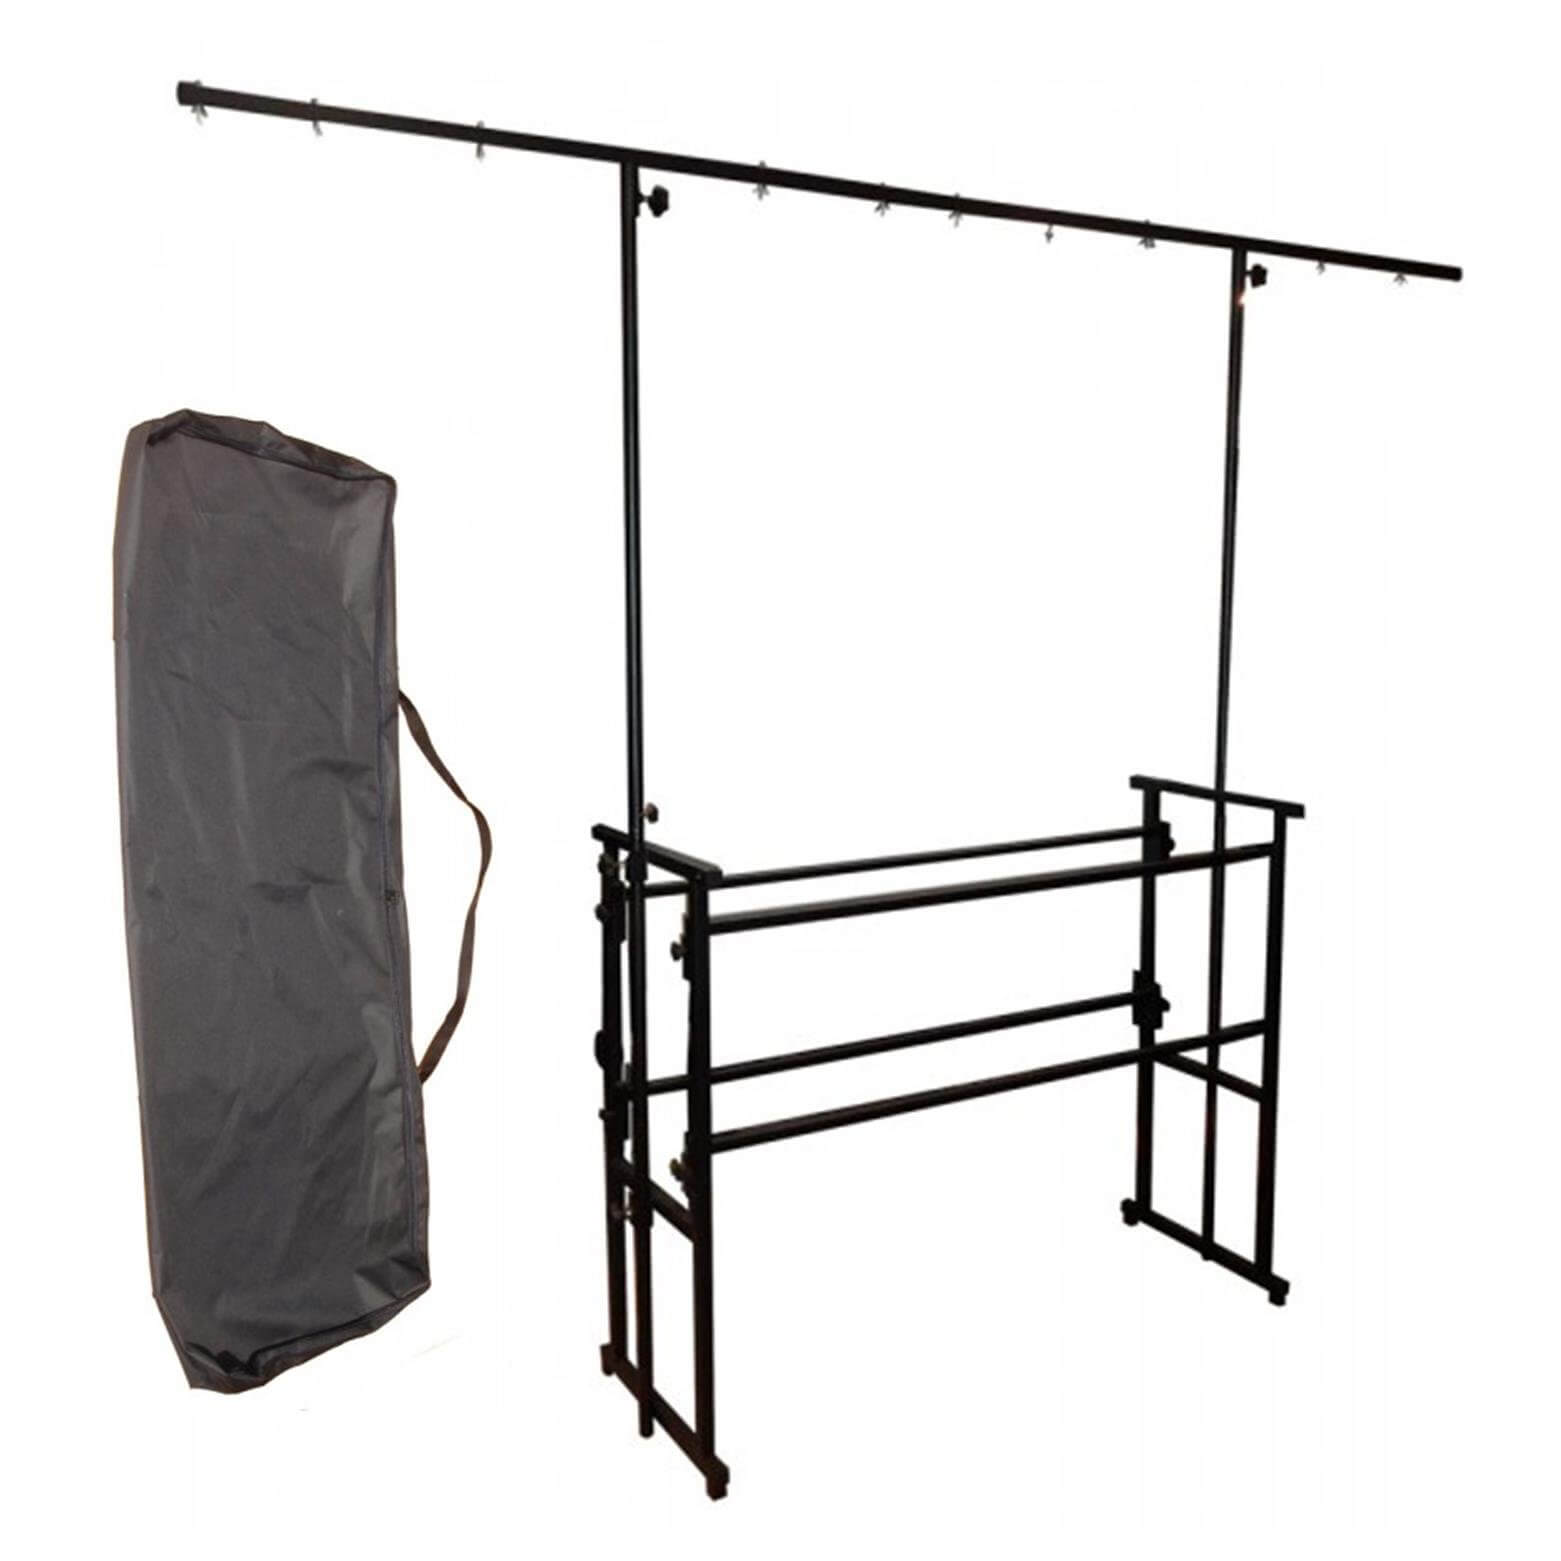 Ibiza Sound Professional Mobile Disco 4ft Deck Stand with Light Bar + Bag